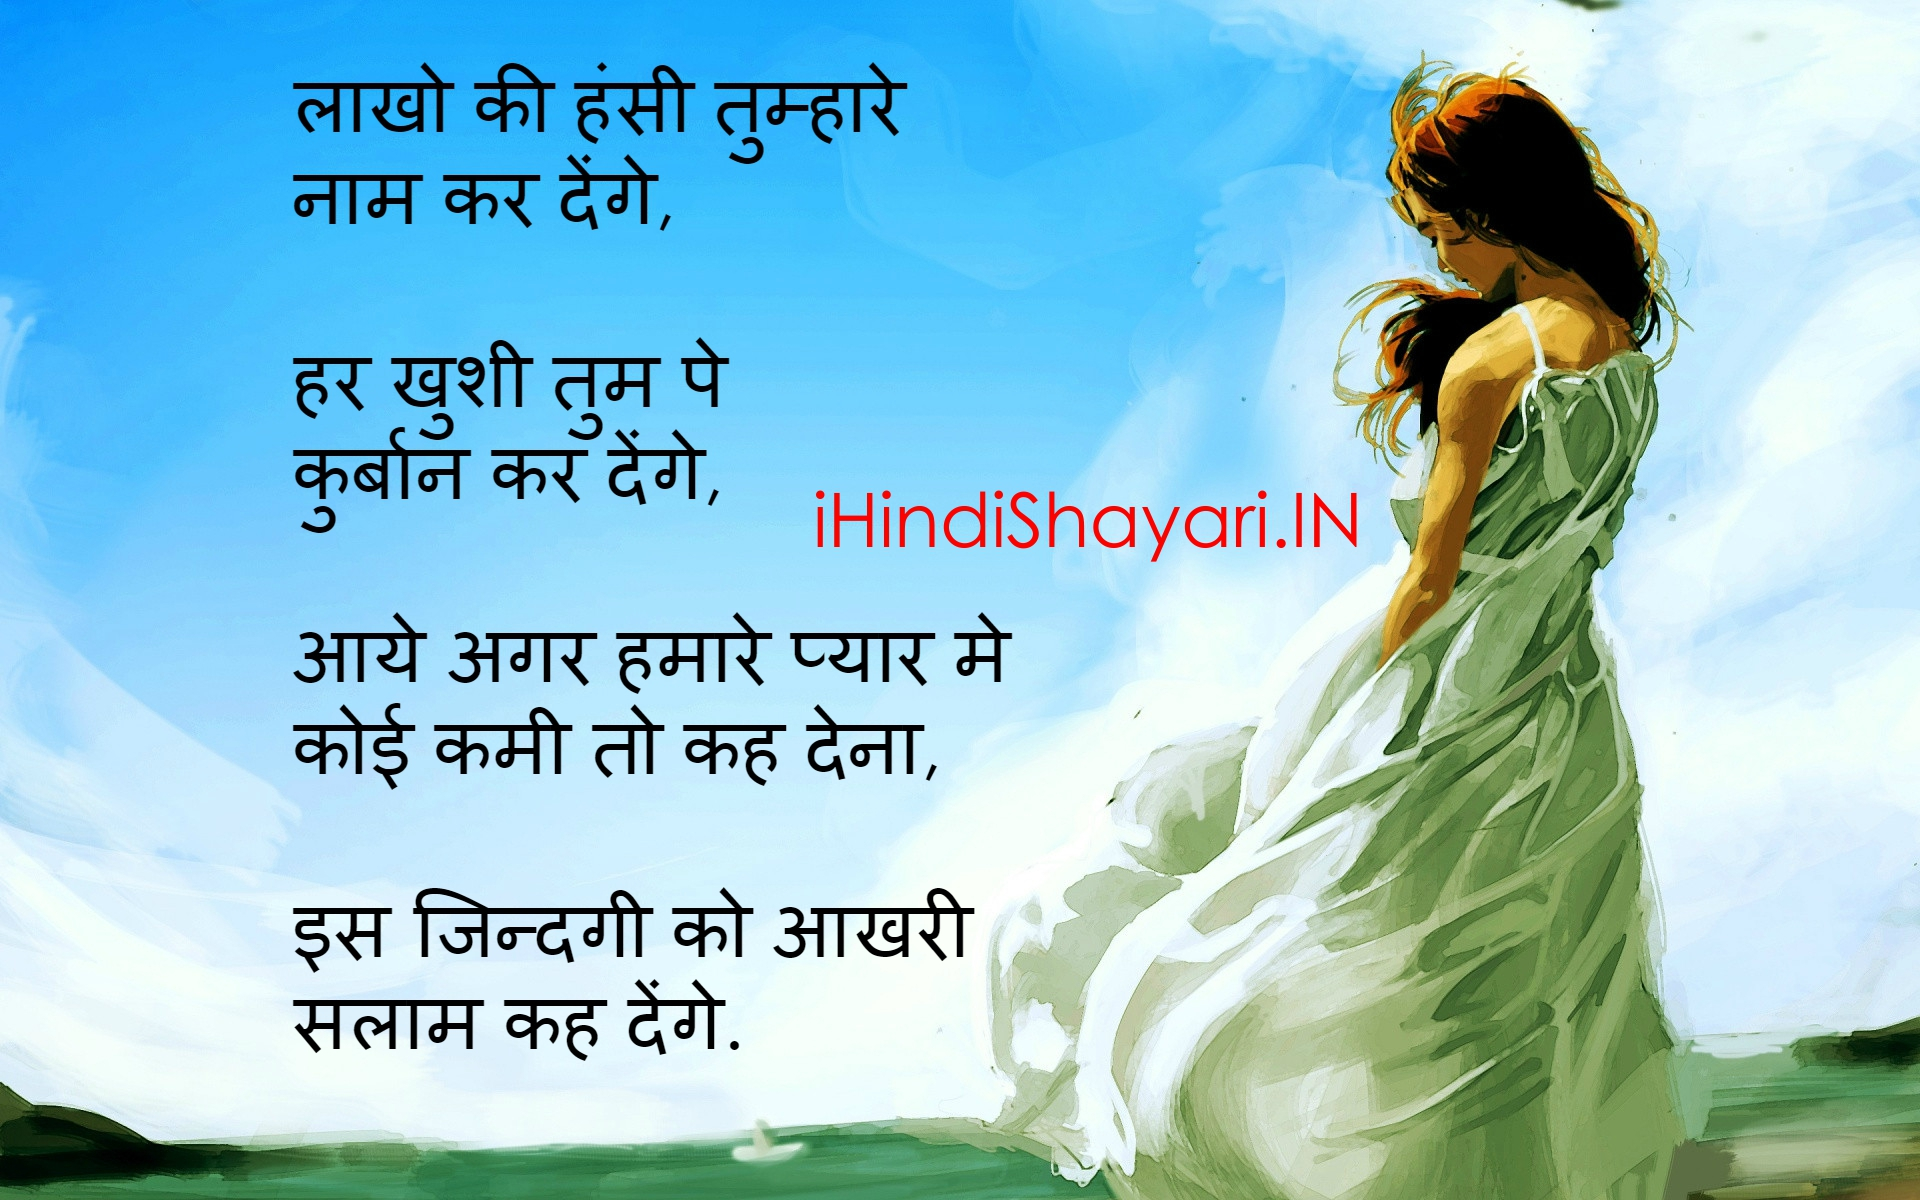 download love shayari wallpaper download gallery